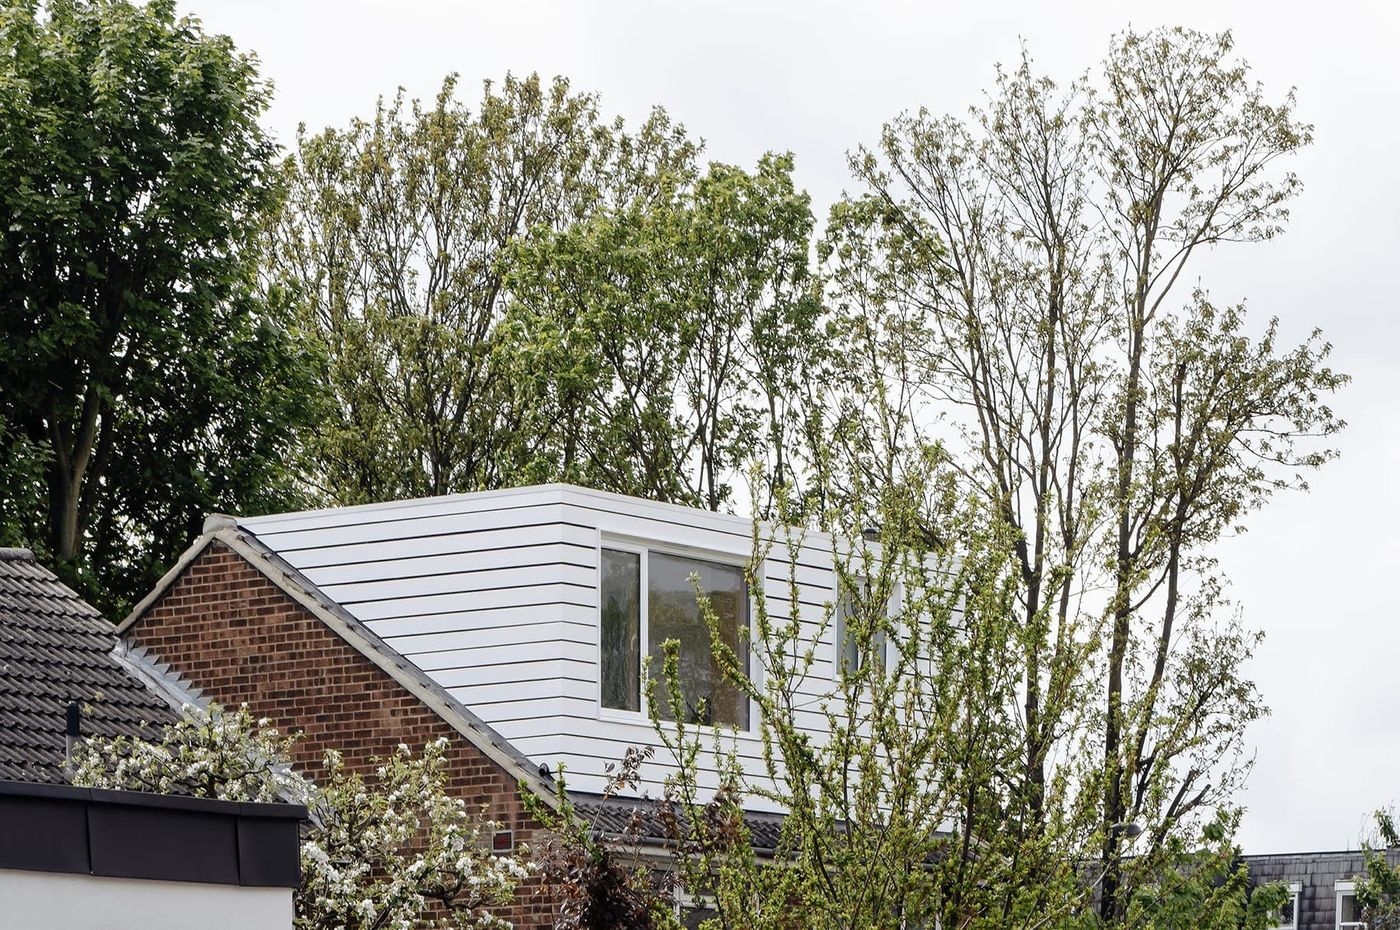 White horizontally clad timber dormer extension designed by From Works in Blackheath, London.